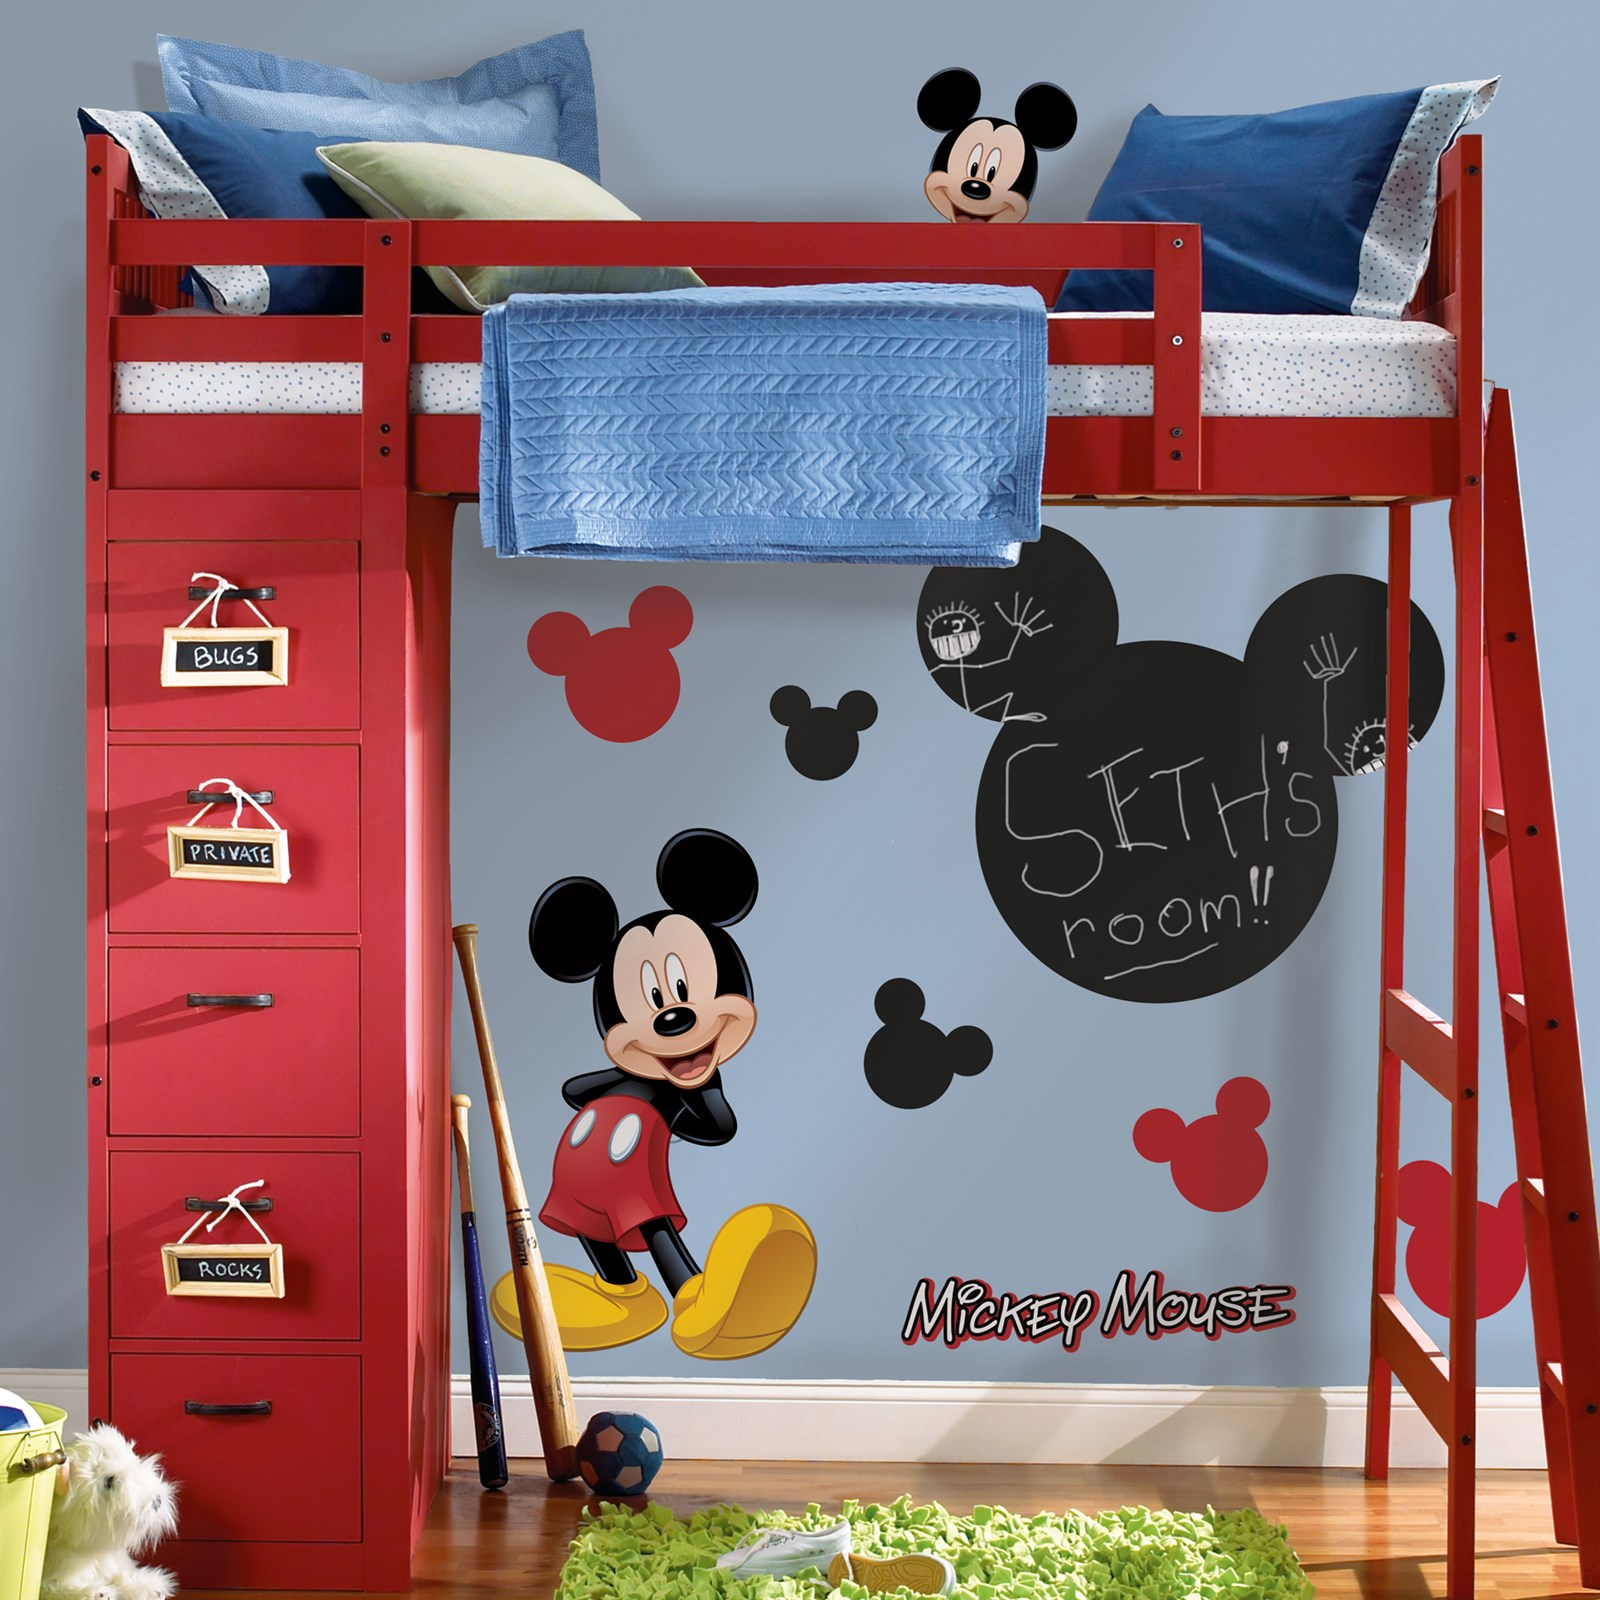 Disney Mickey Mouse Chalkboard Peel and Stick Wall Decals